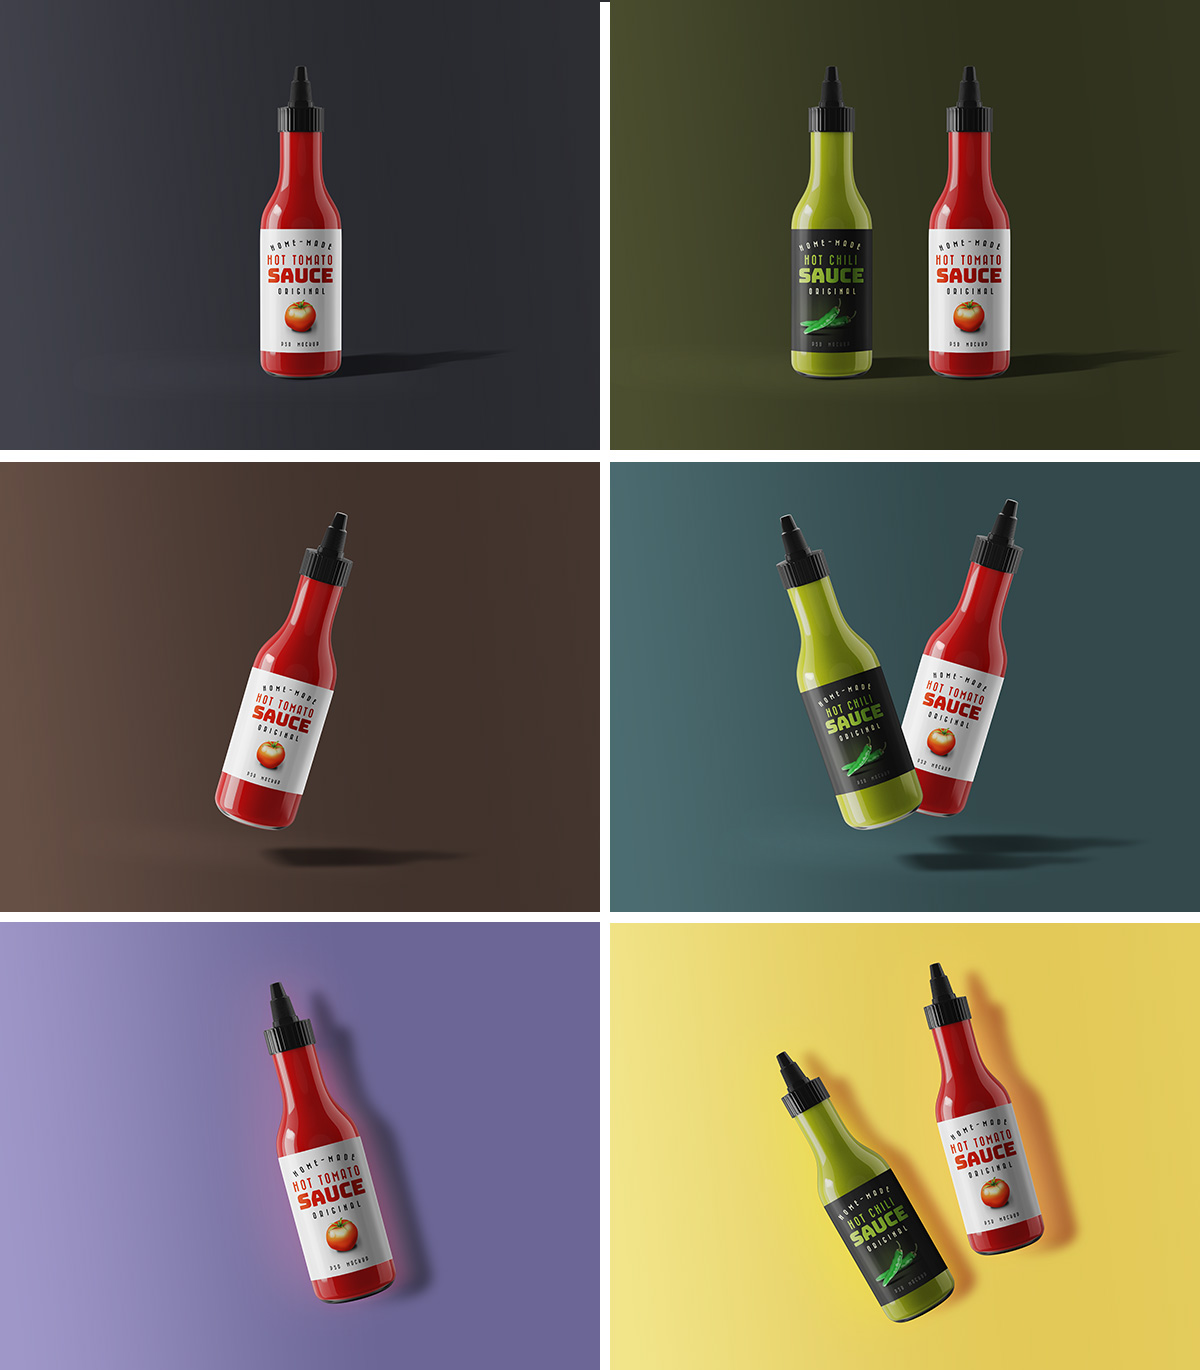 Sauce Bottle PSD Mockup